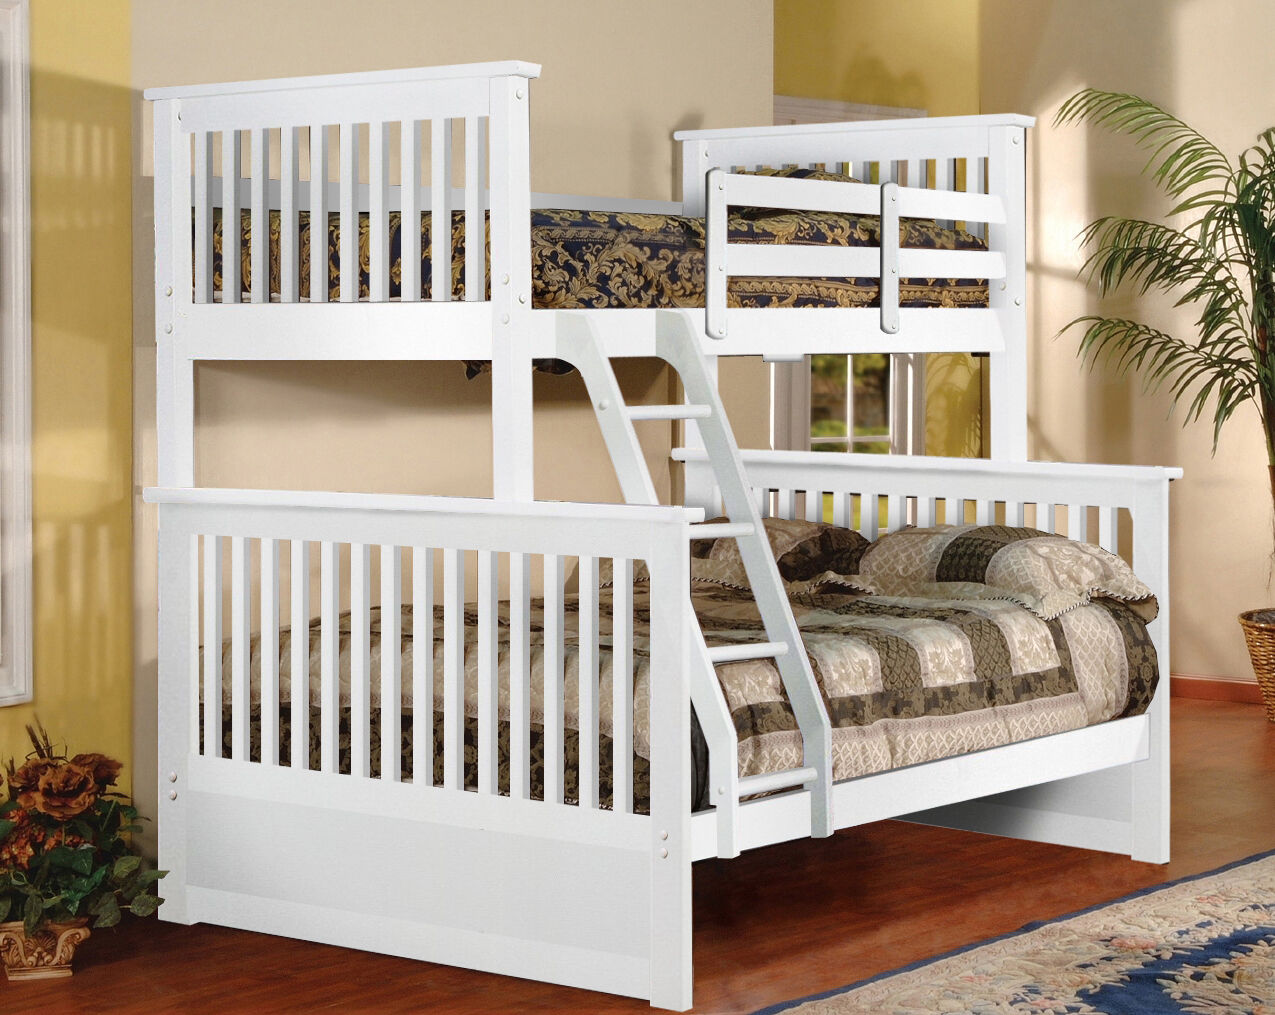 white finish wood twin over full size convertible bunk bed new ebay. Black Bedroom Furniture Sets. Home Design Ideas